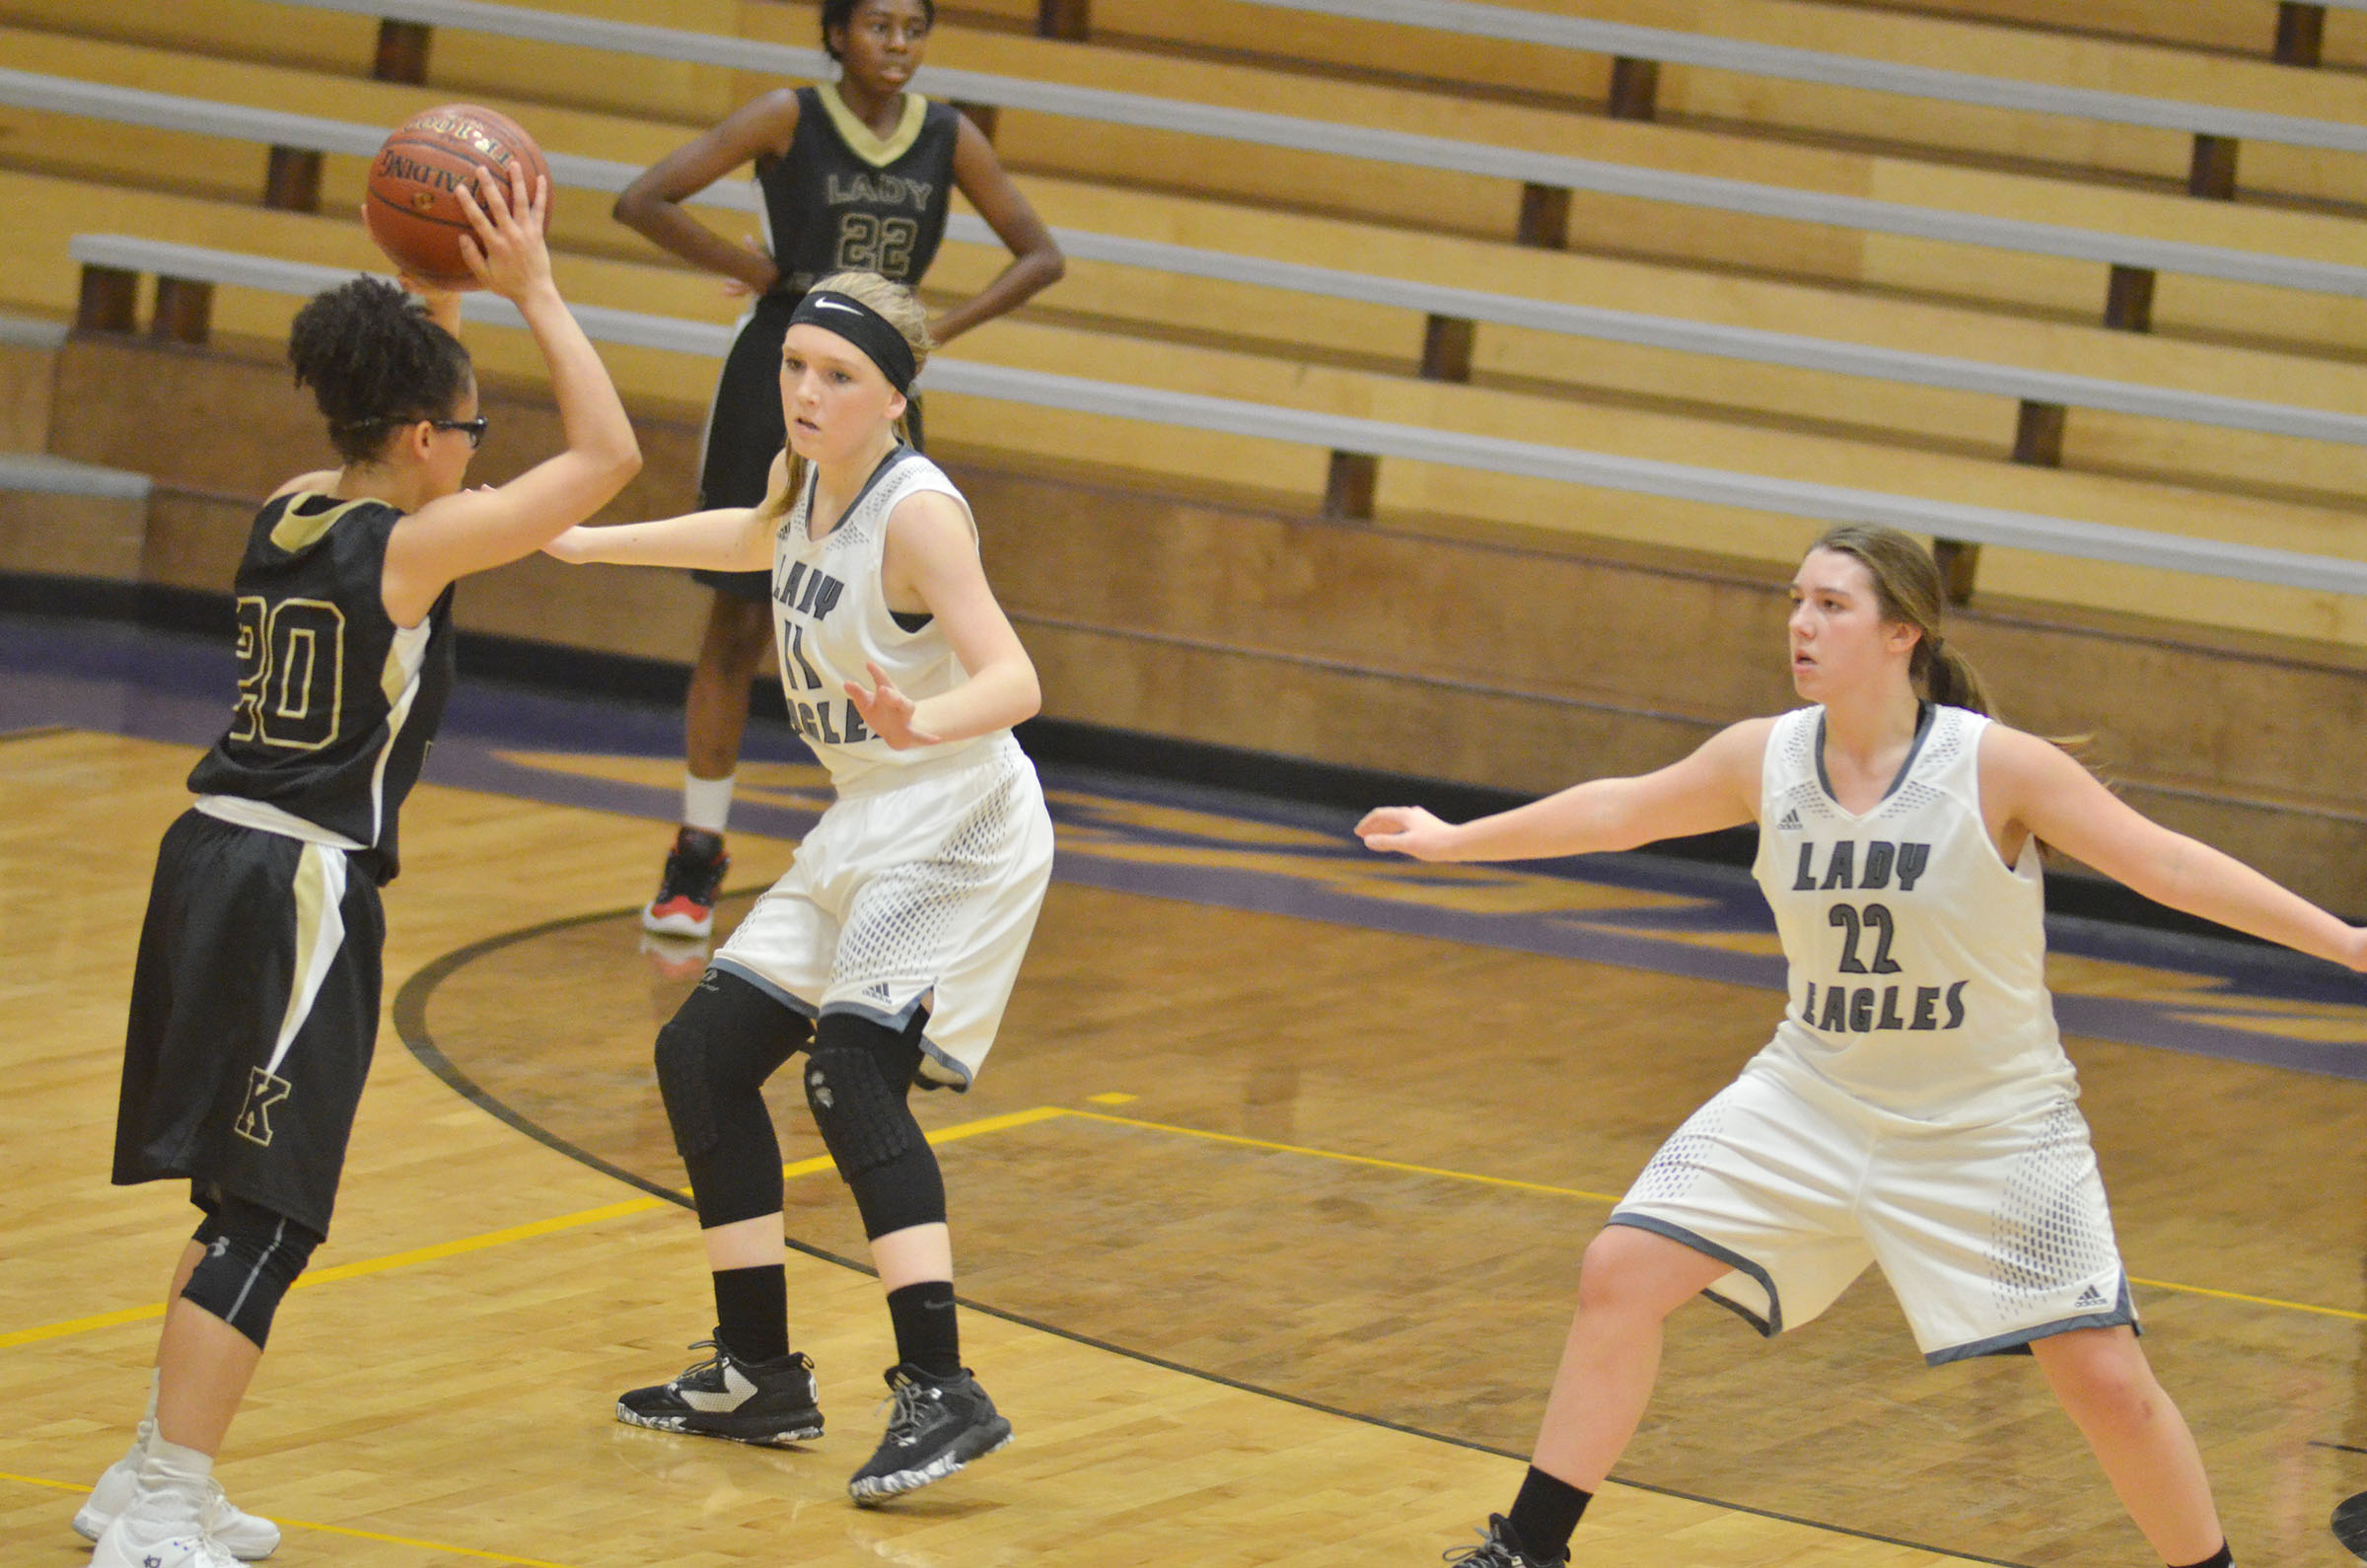 Campbellsville Middle School eighth-graders Catlyn Clausen, at left, and Abi Wiedewitsch play defense.